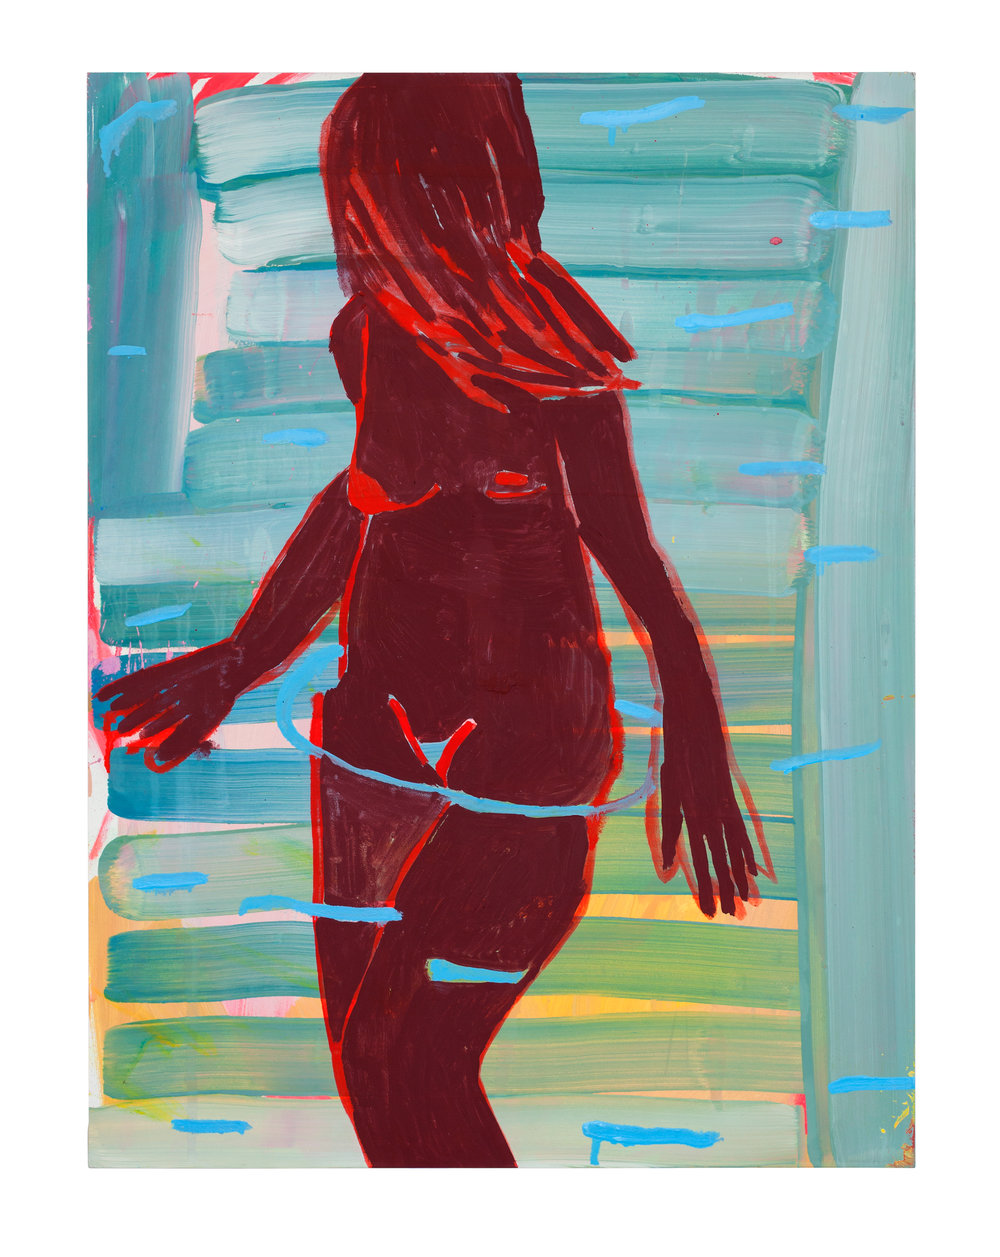 'Fire Bath', Kimia Ferdowski Kline, from the exhibit 'Breathing on Land'. Courtesy of TURN Gallery..